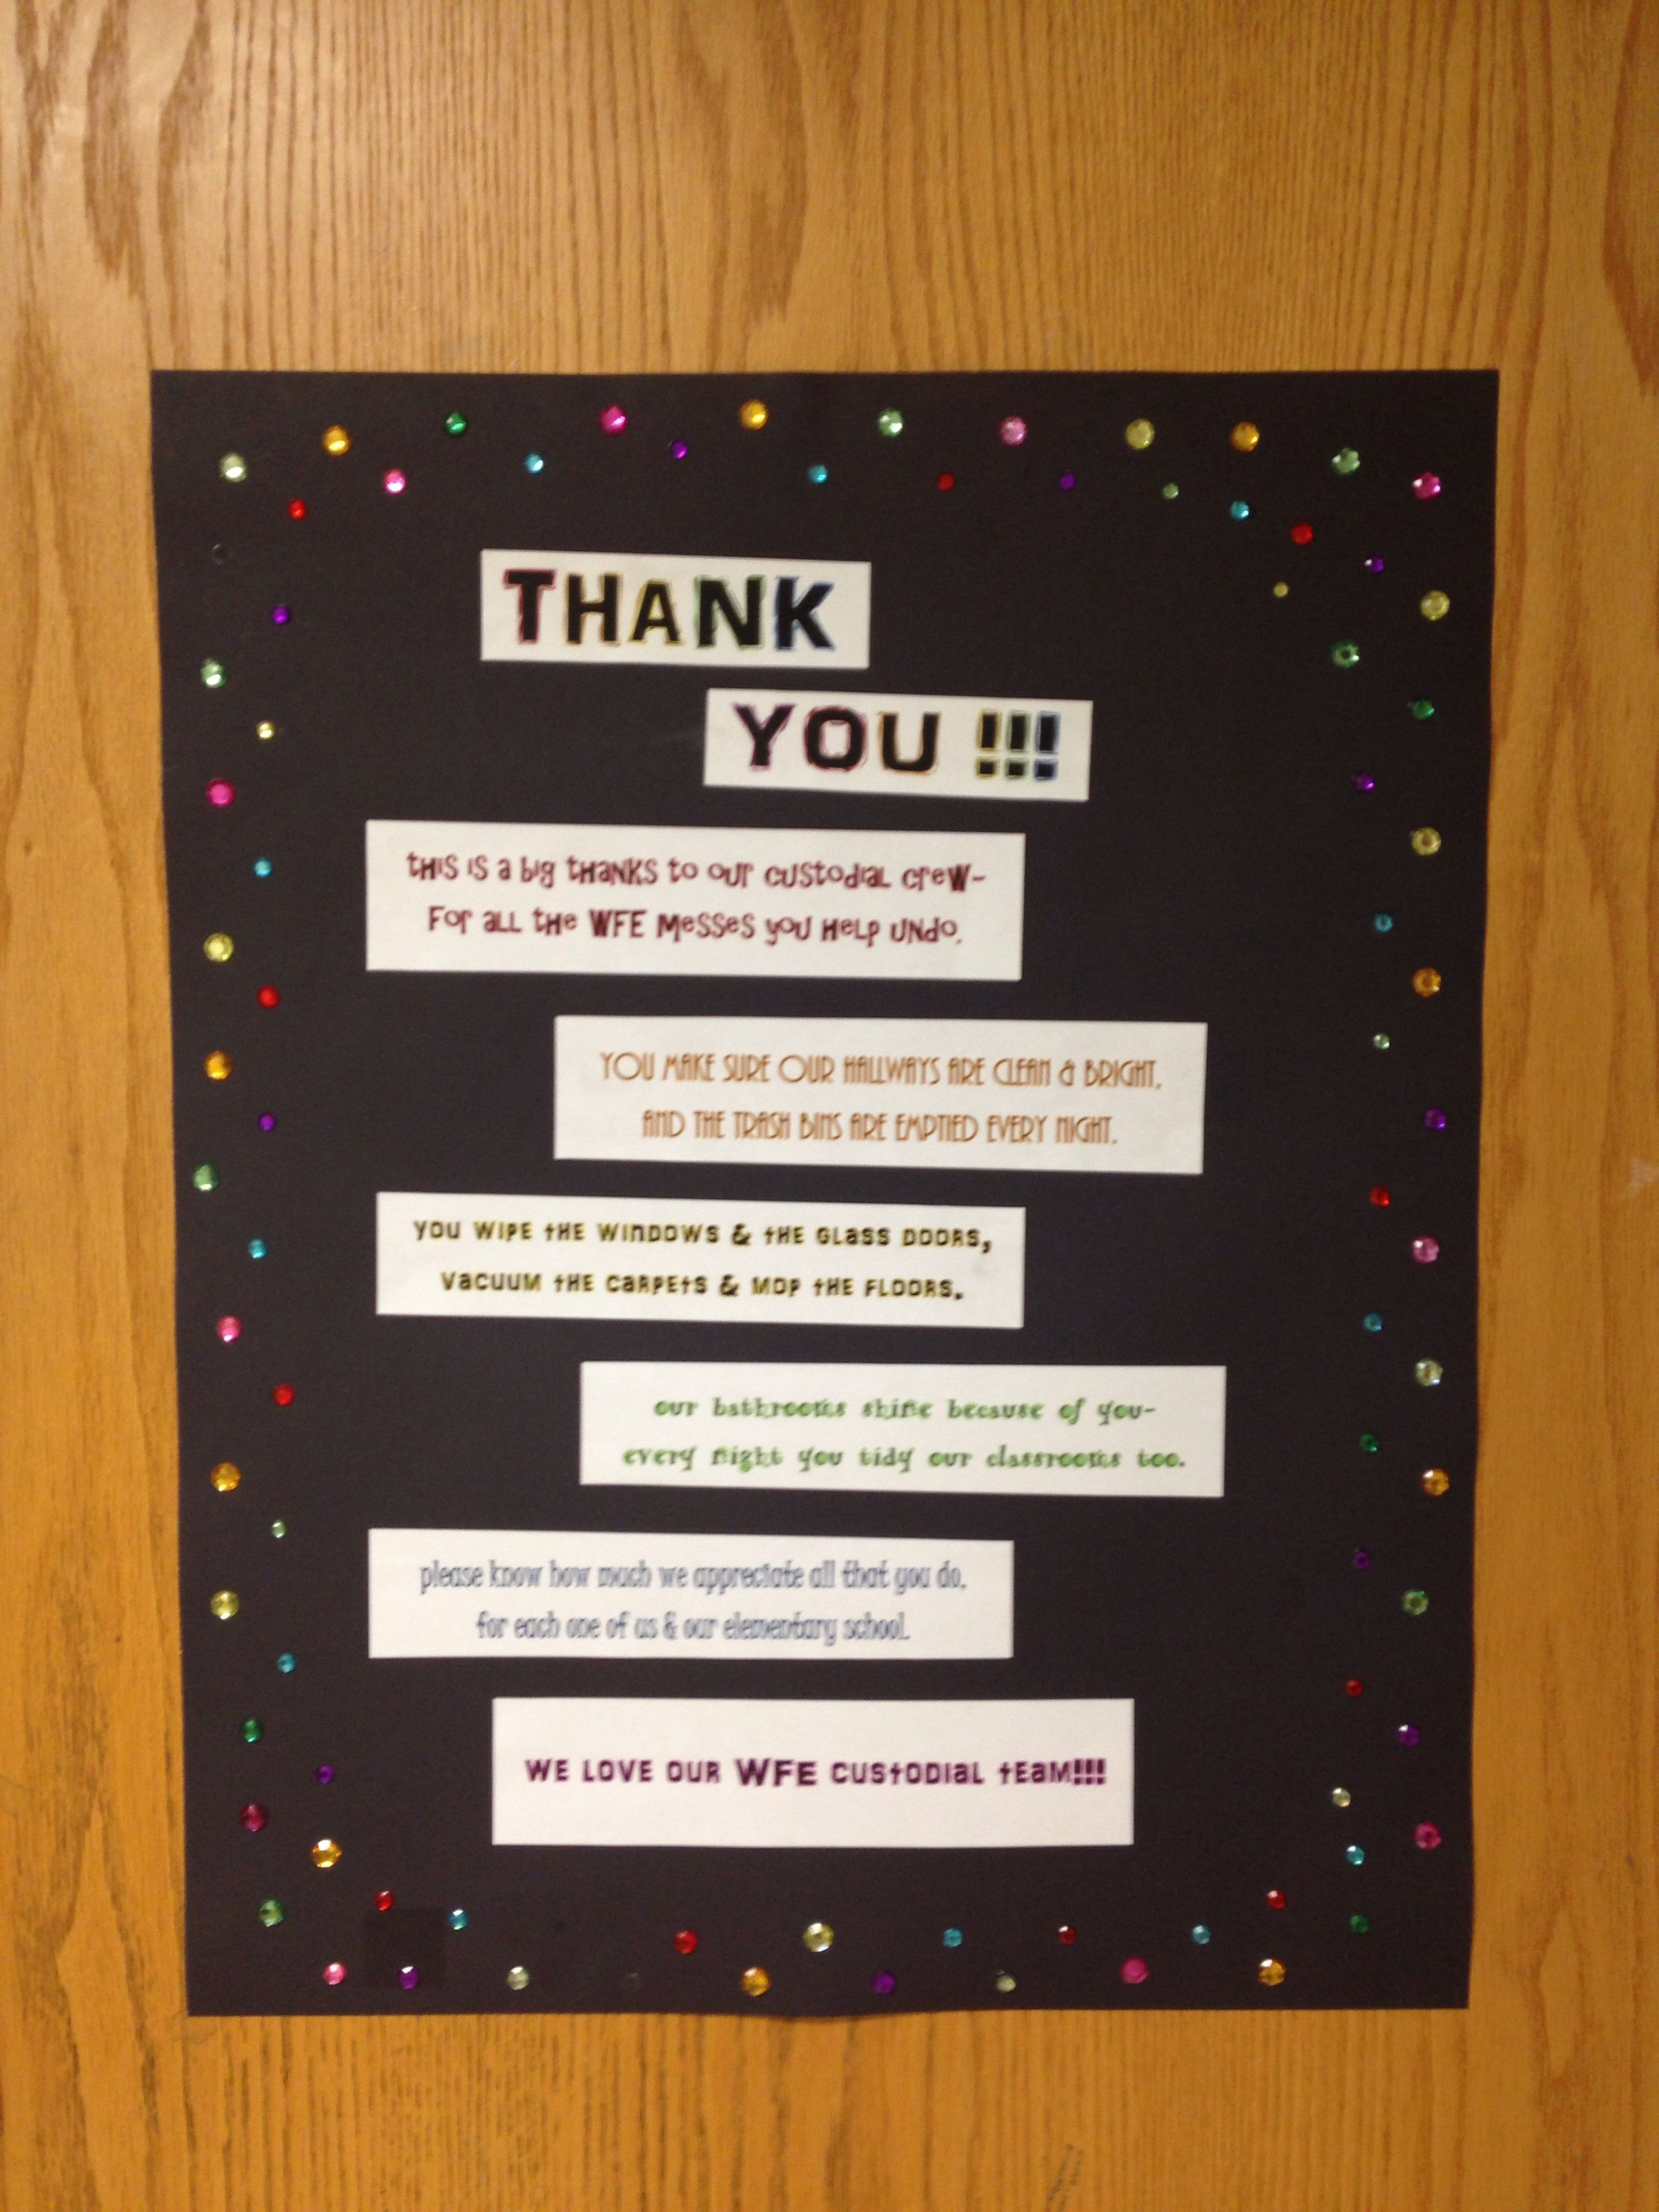 Janitor Poem On Poster Board To Decorate Doors For Custodian